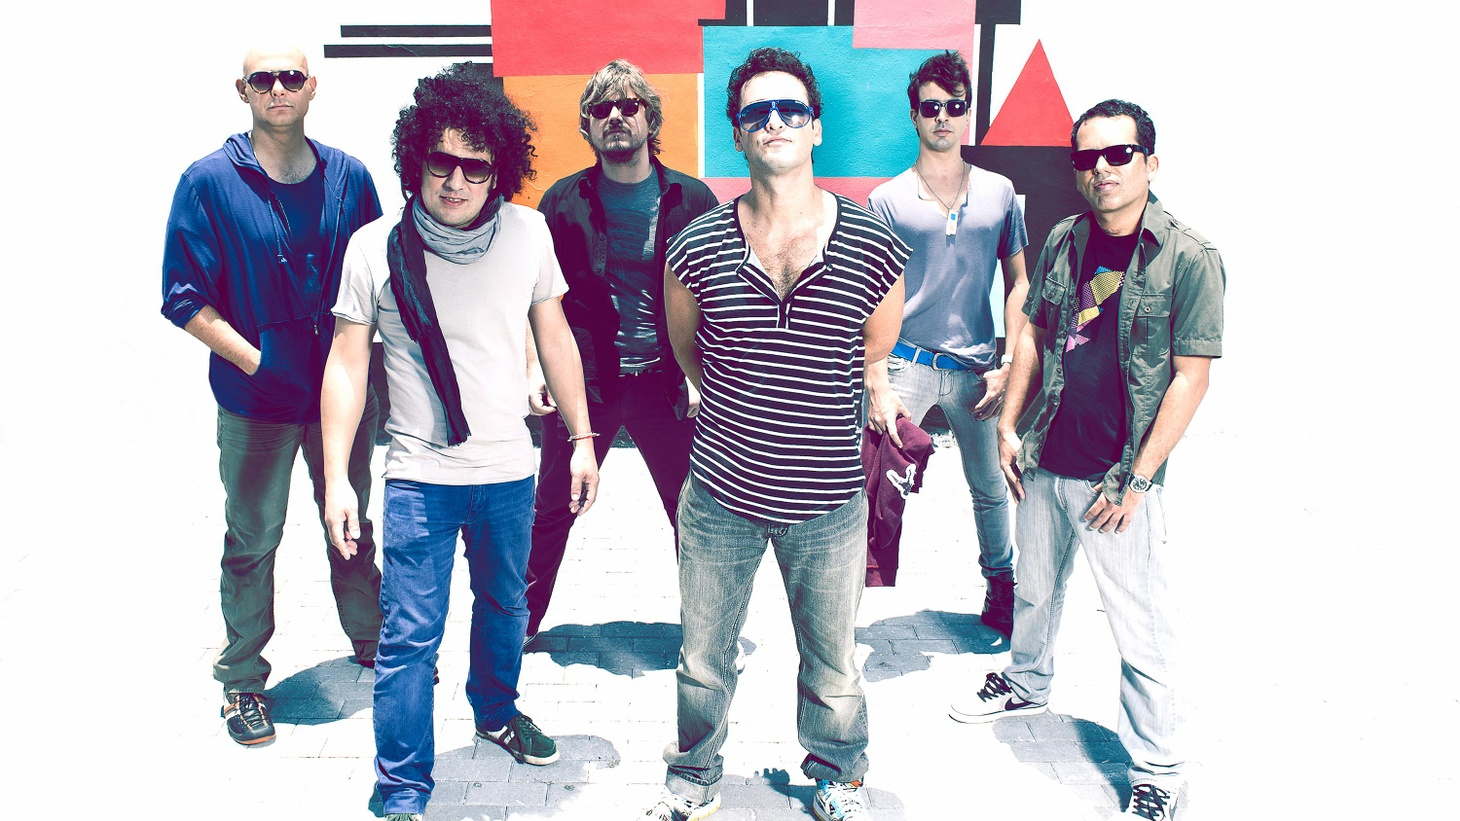 Latin Grammy-winning Venezuelan band Los Amigos Invisibles, who have been together for the past 20 years touring the world, deliver a fresh take on Latin soul.